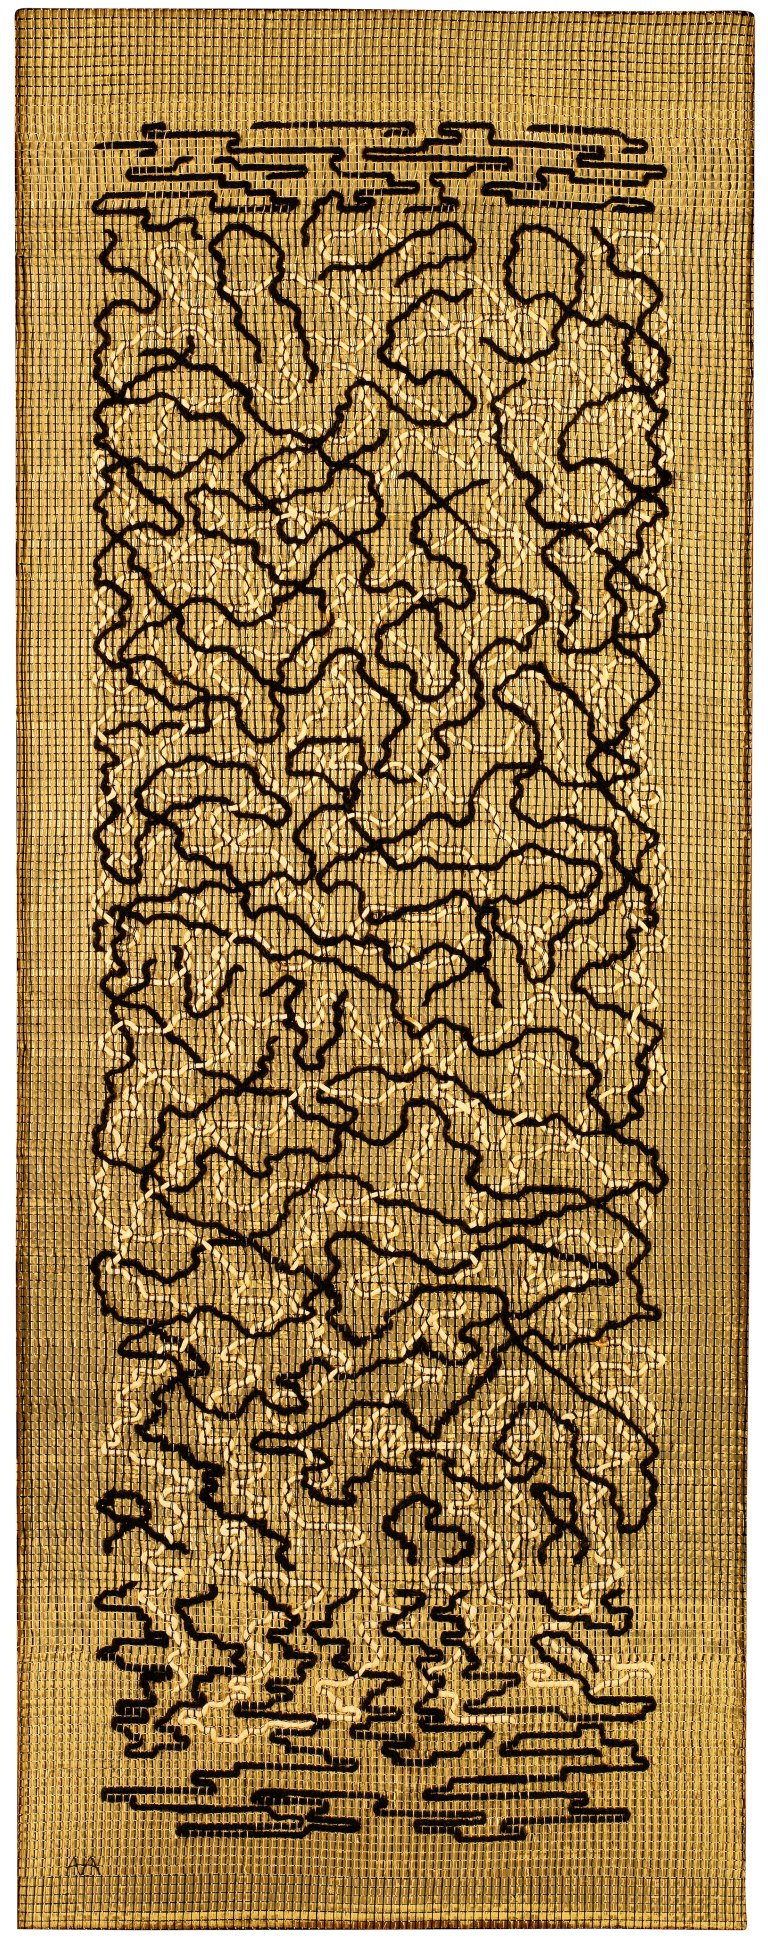 Anni Albers, Epitaph, 1968